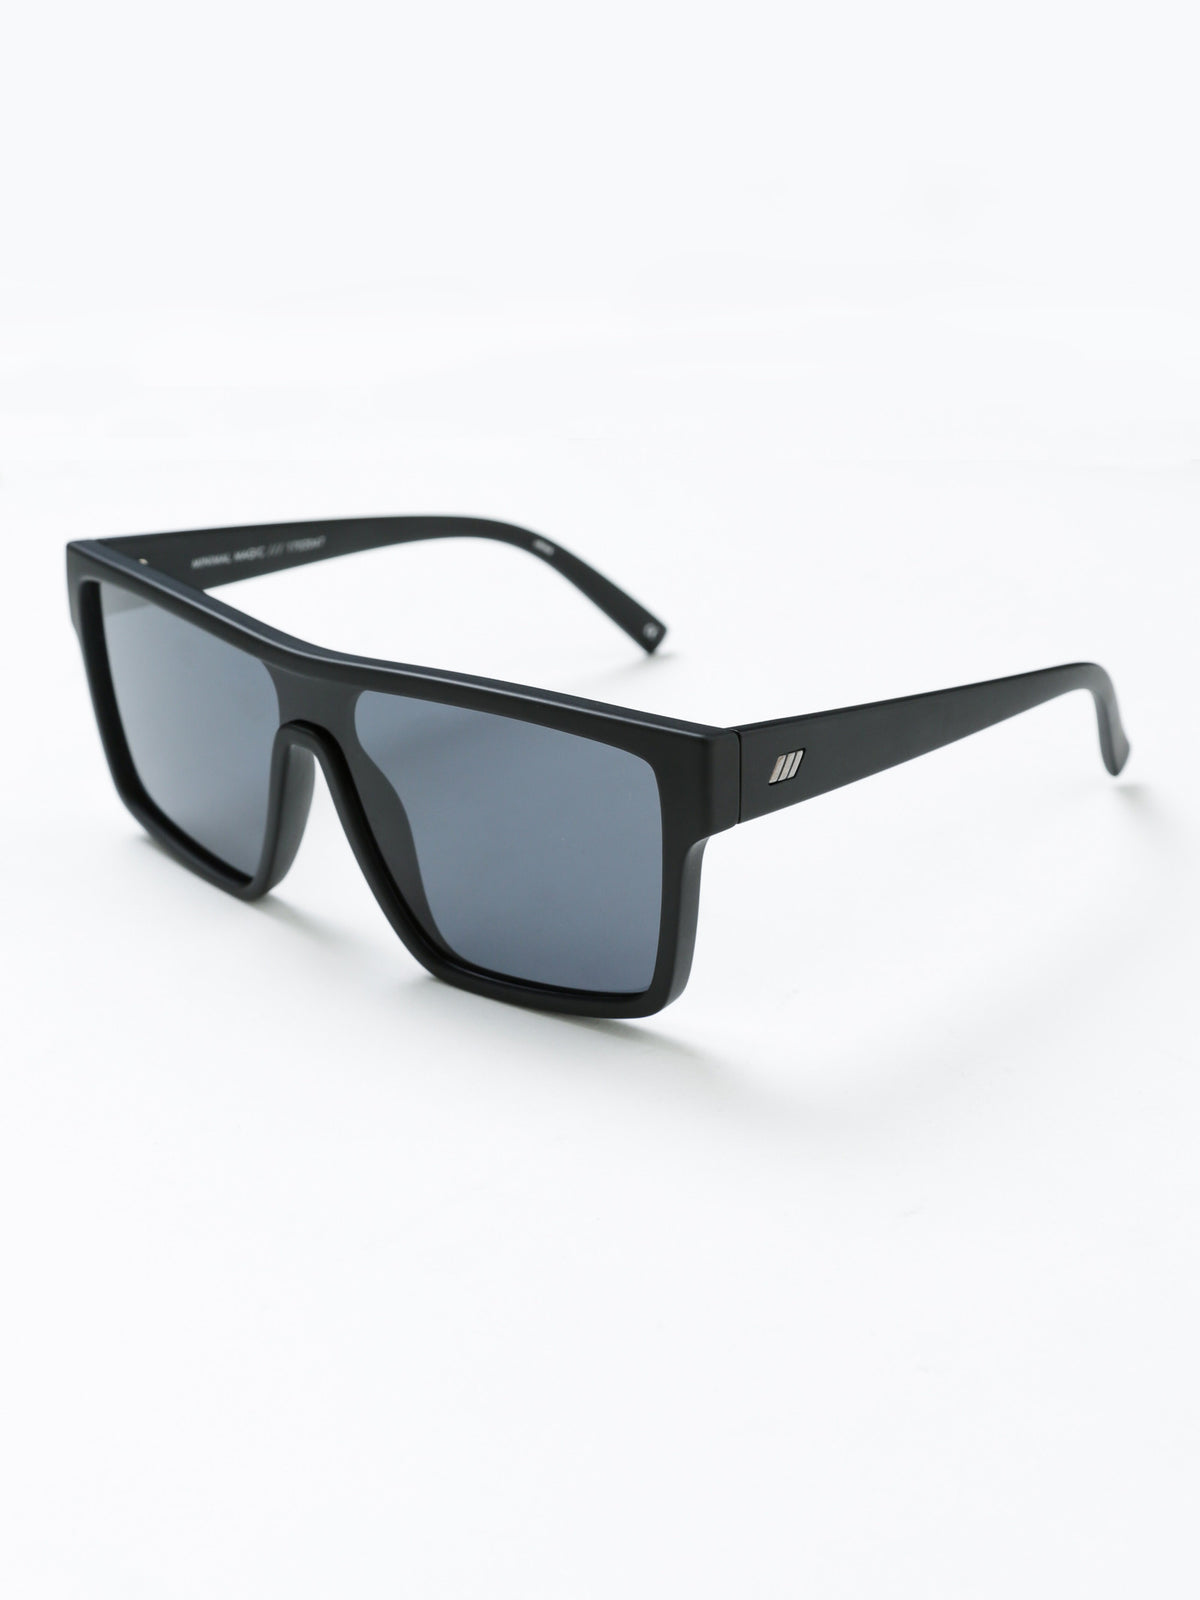 Dirty Magic Sunglasses in Black